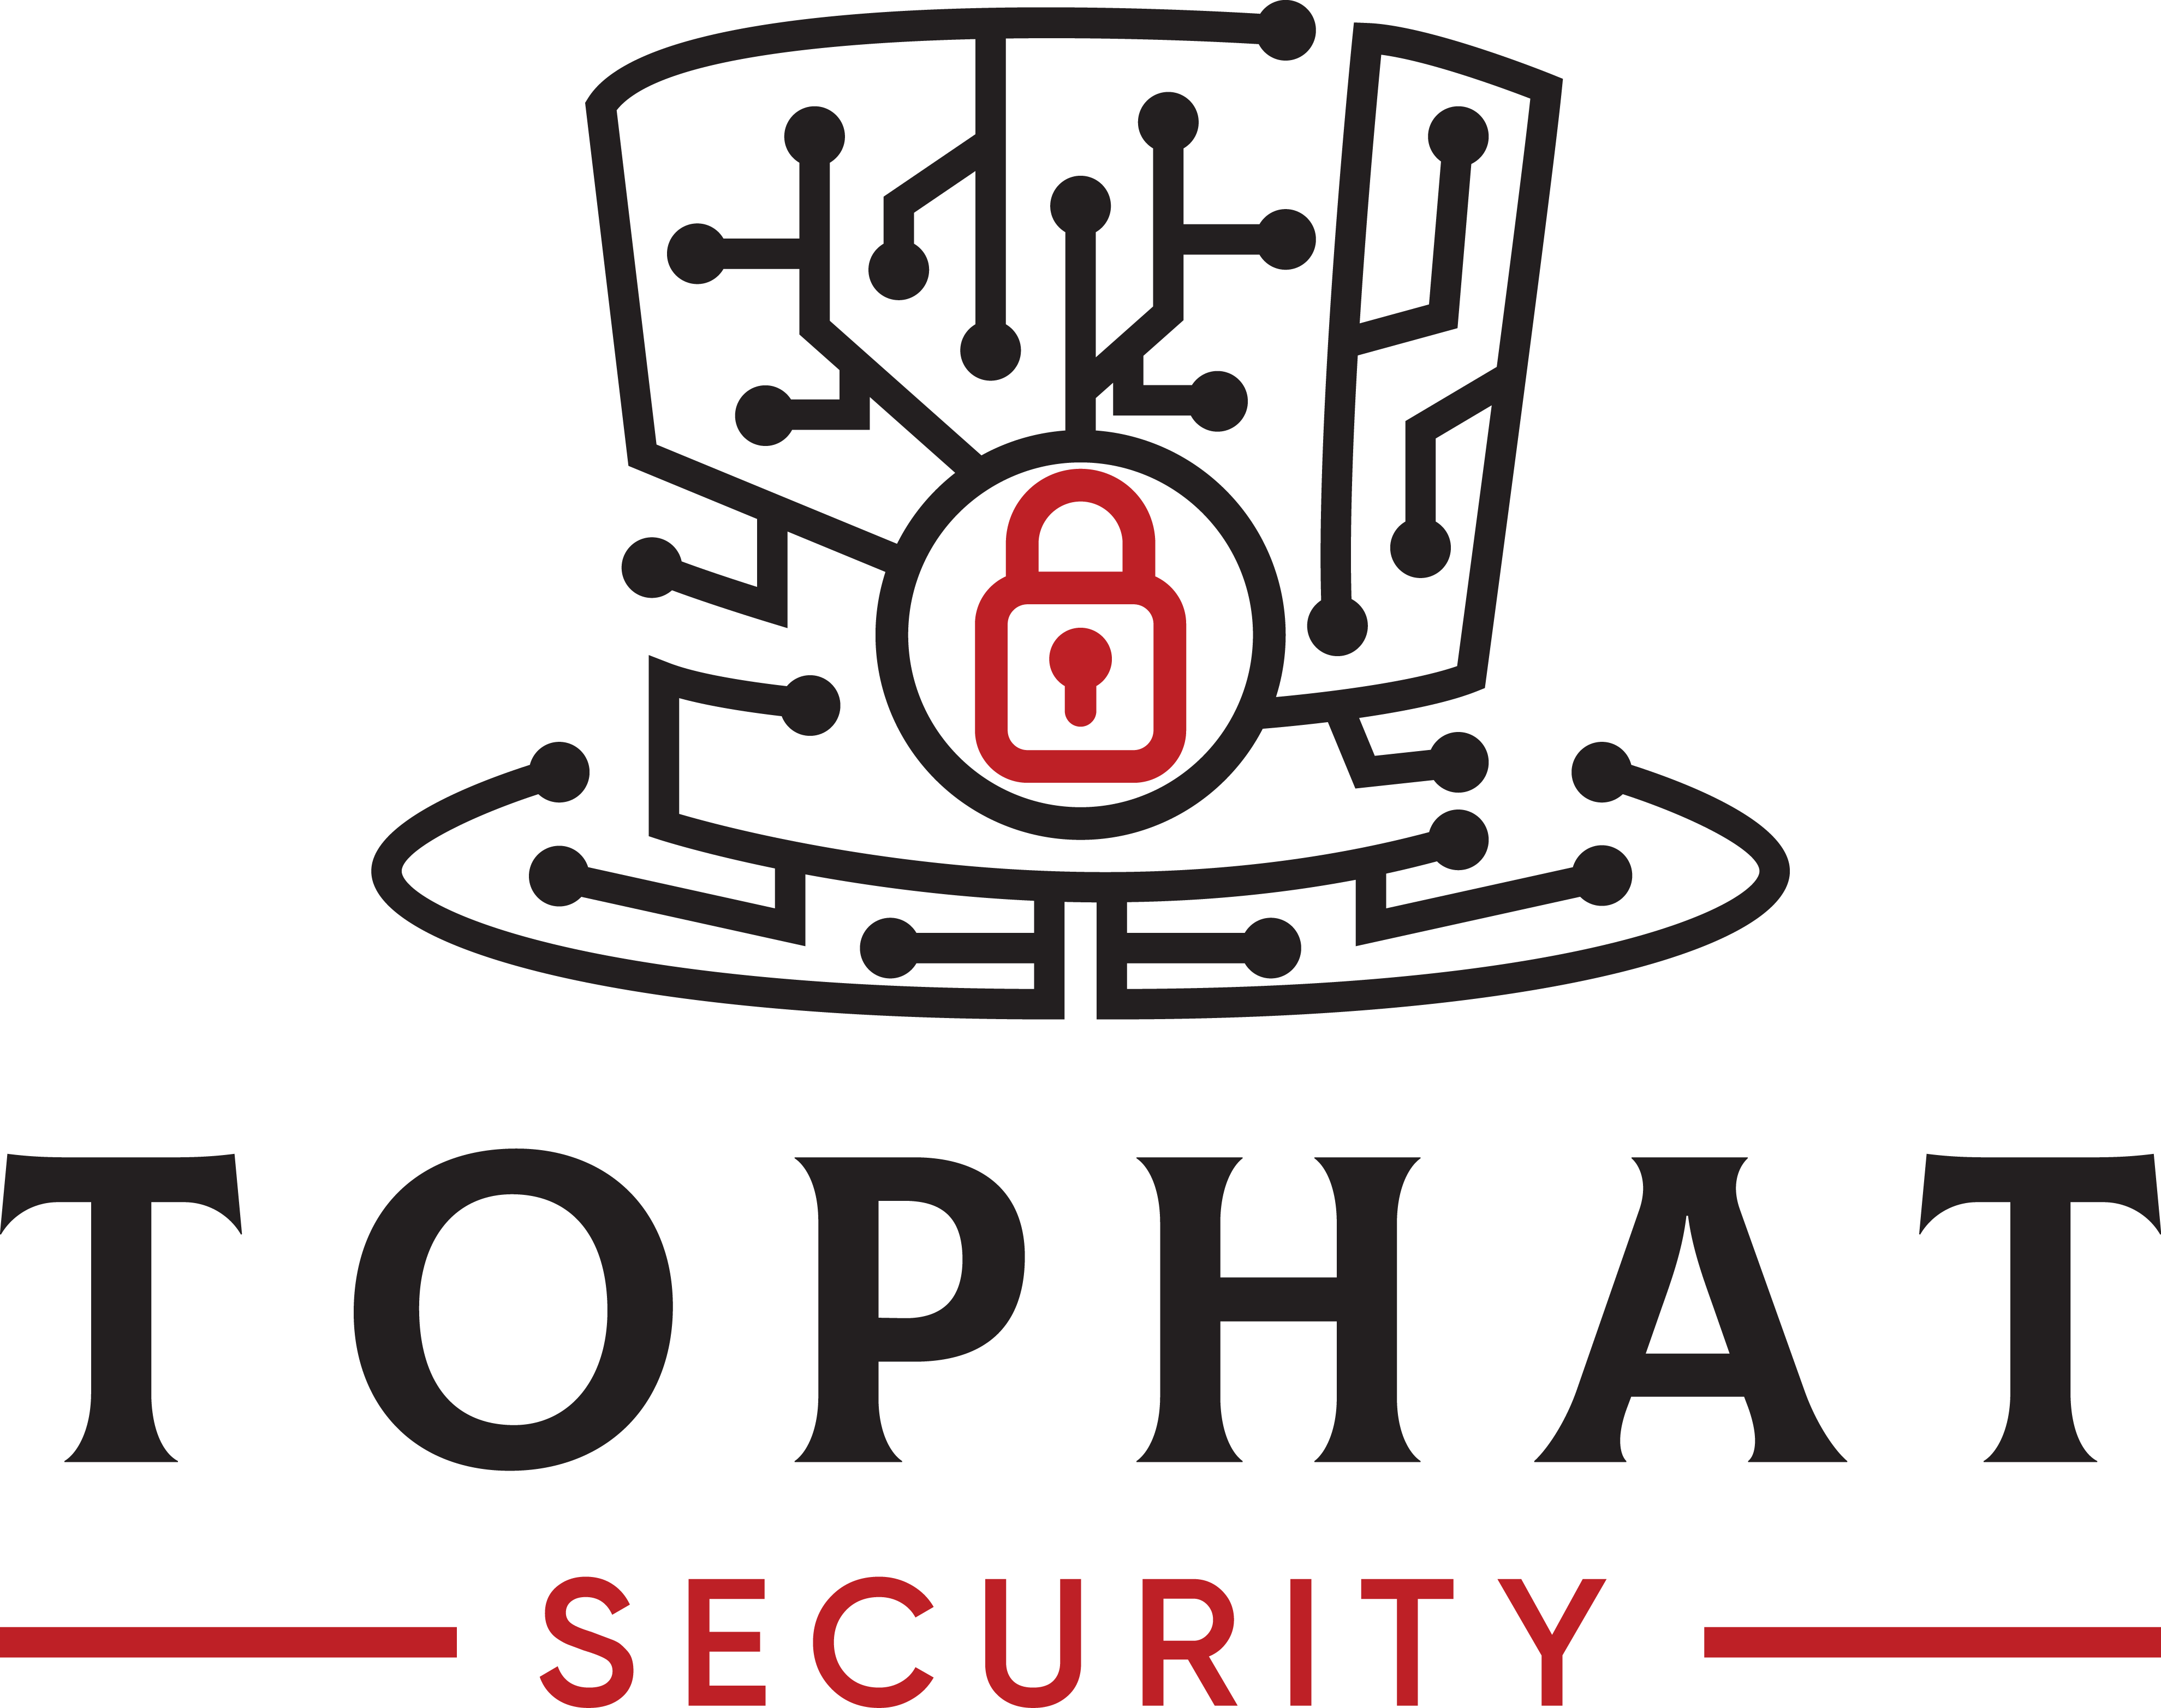 TopHat Security